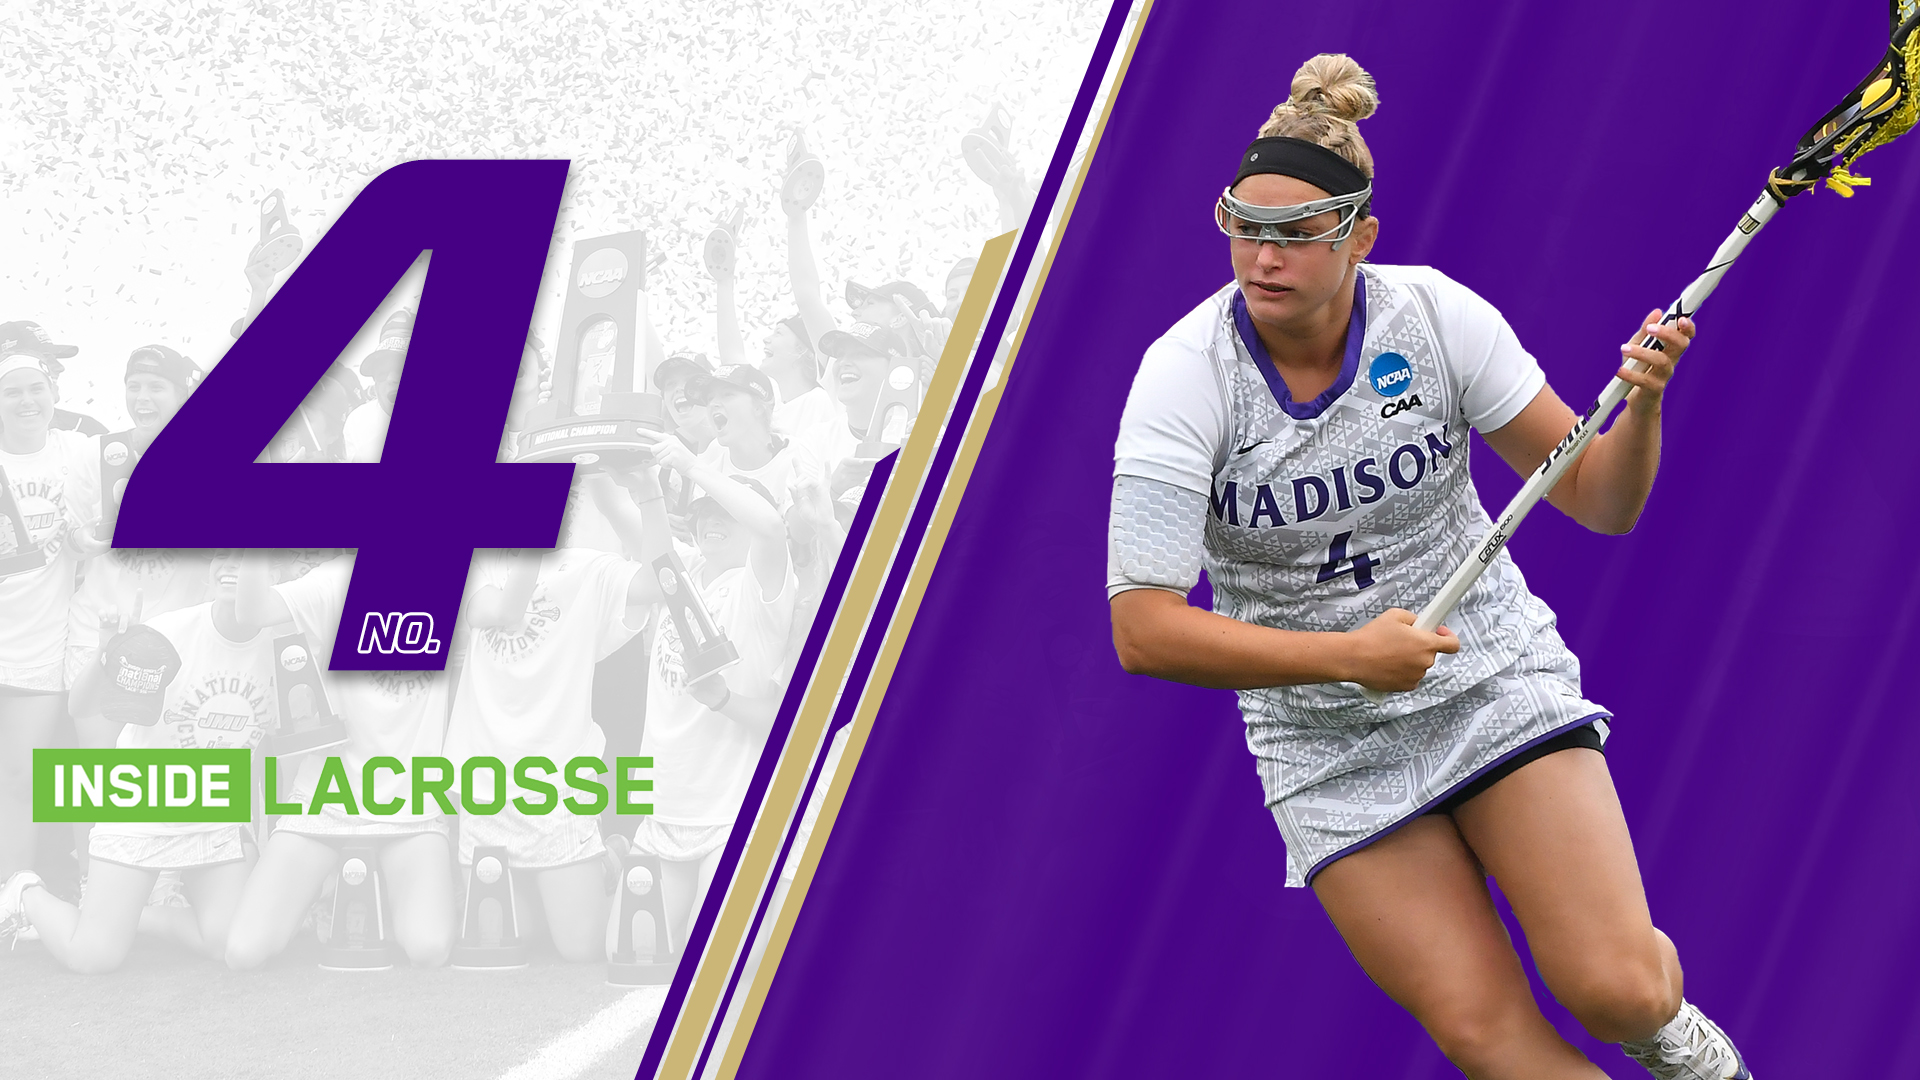 Lacrosse: Dukes Rank Fourth Nationally in Face-Off Yearbook Preseason Top 25